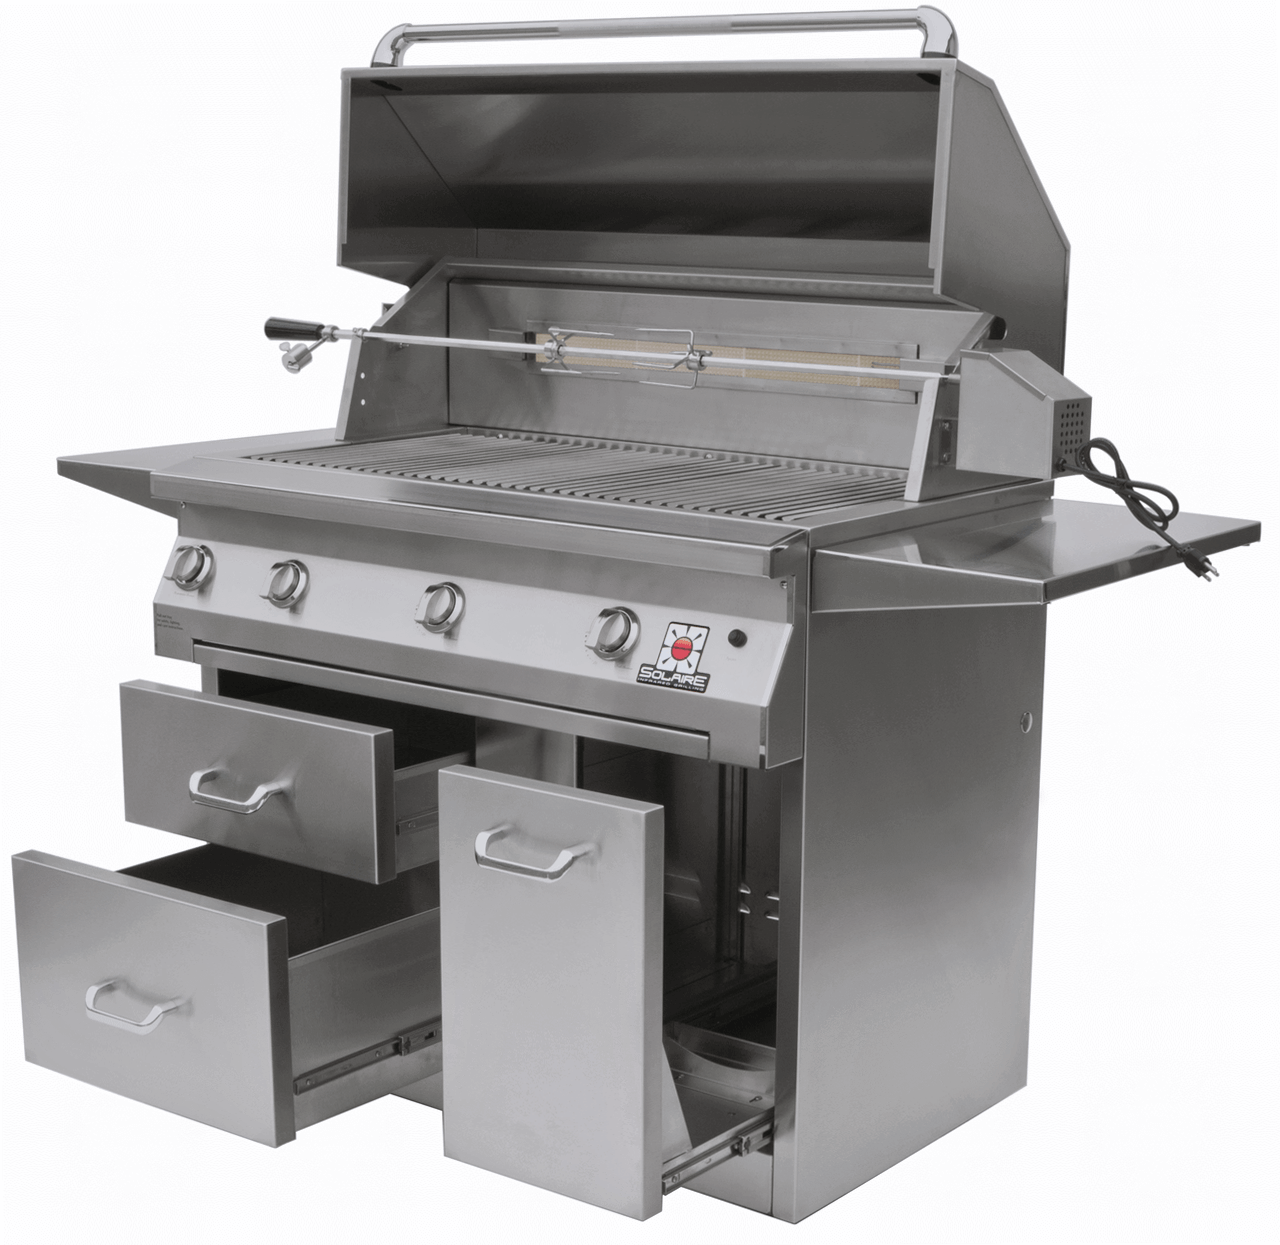 Solaire 42 Inch Grill, Premium Cart, Front View, Hood Up, Rotisserie, Shelves Up, Doors Open, AGBQ